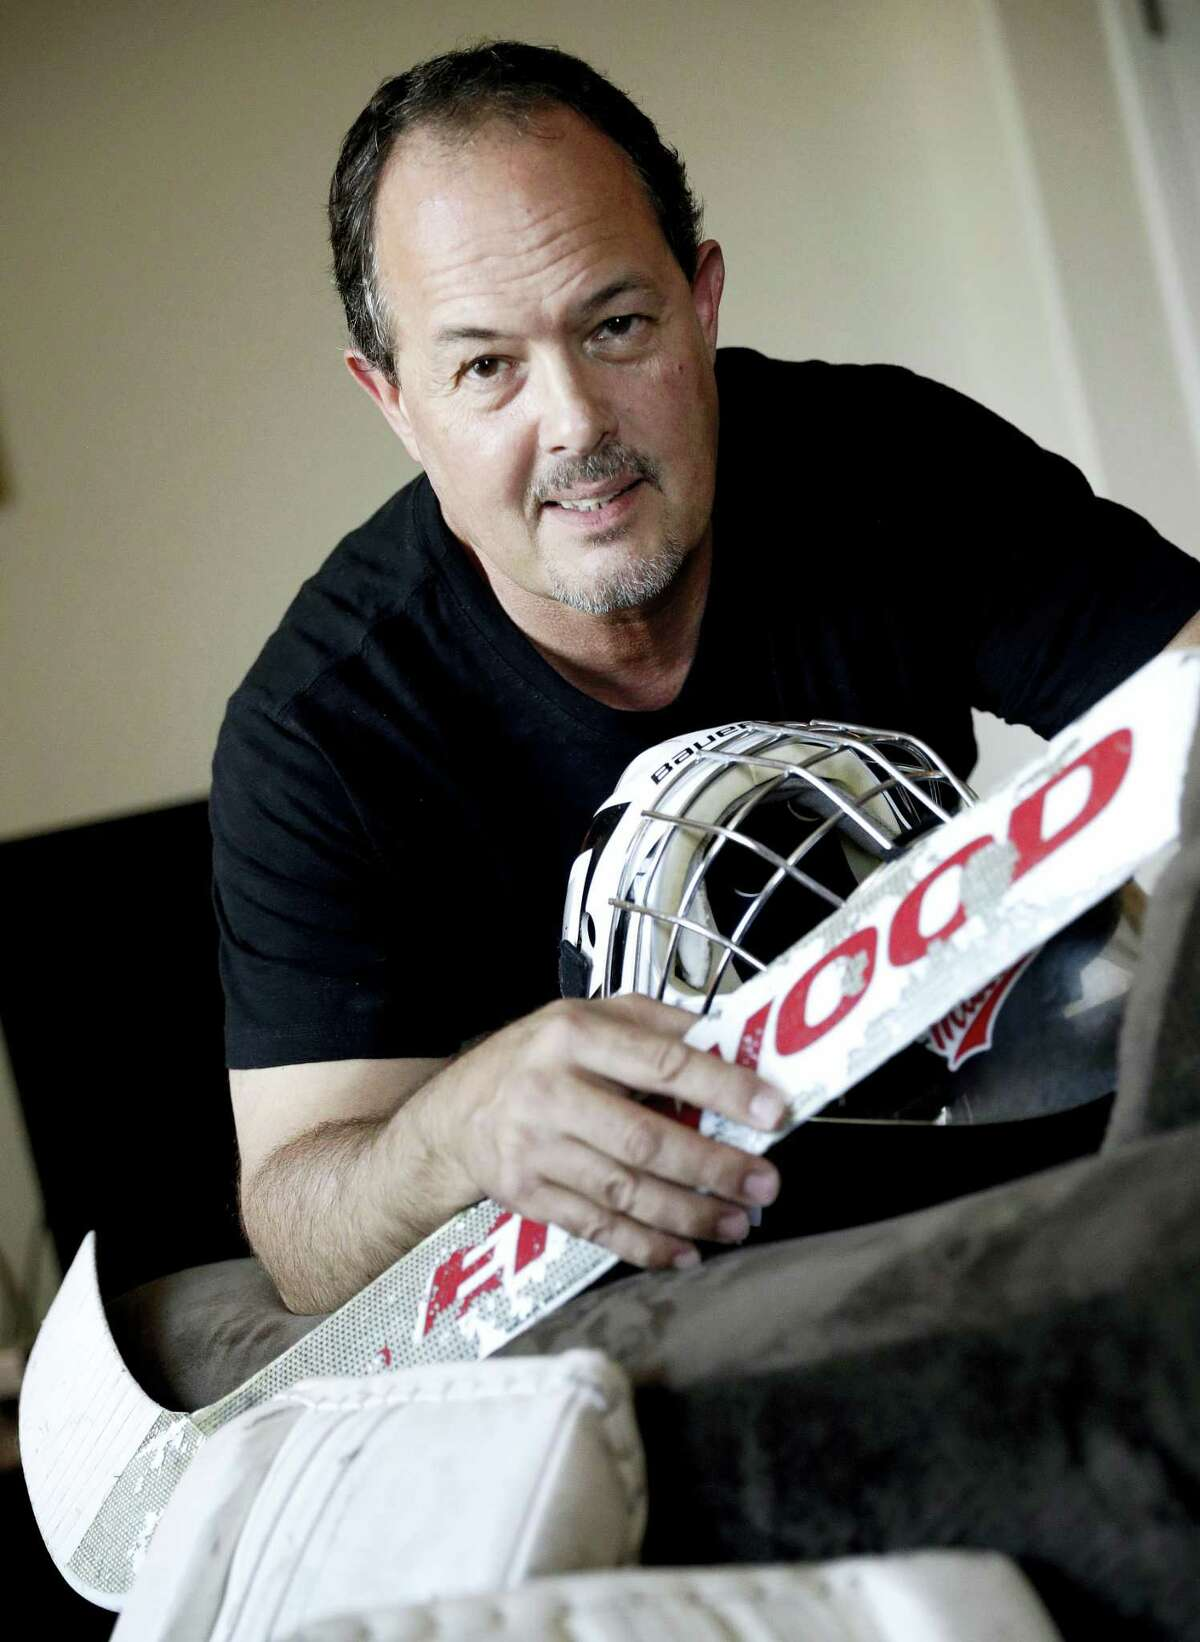 Tim Richmeier poses for a photo with some of his 15-year-old son's hockey equipment, in Phoenix. Richmeier was spending about $5,000 a season using his tax refunds, halting contributions to his 401(k), and putting travel expenses on a credit card, including $6,000 he's still paying off, so his son could play on a travel hockey team.